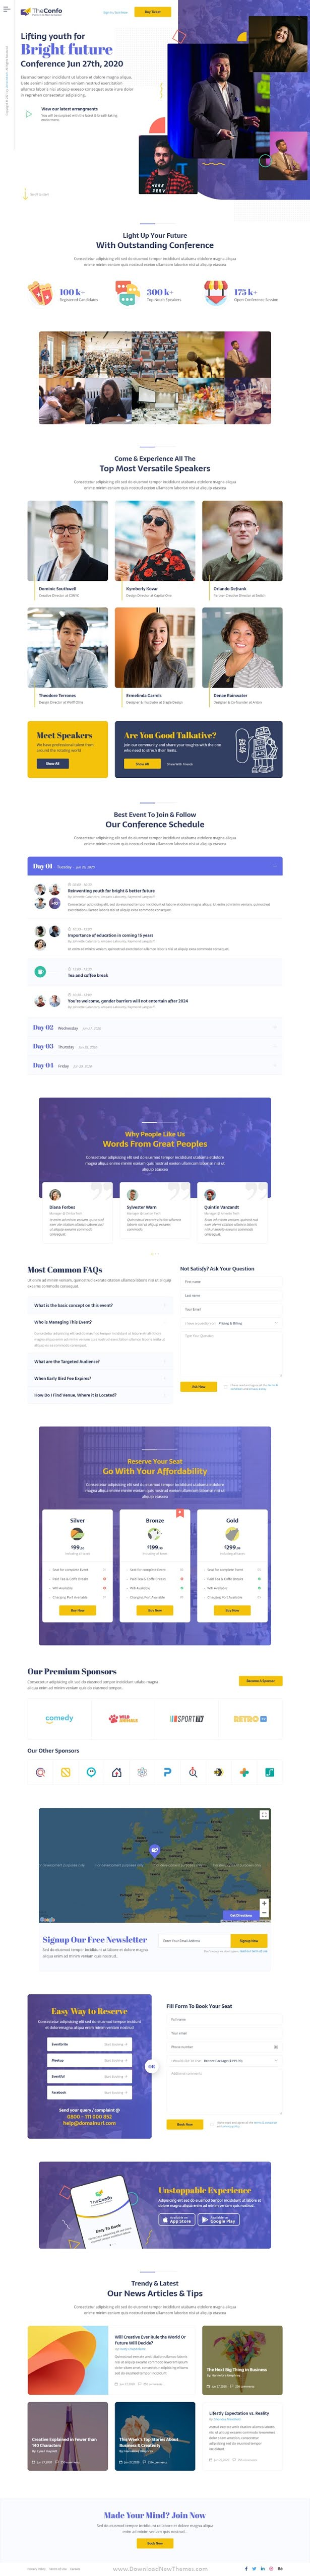 Event Listing Page Template